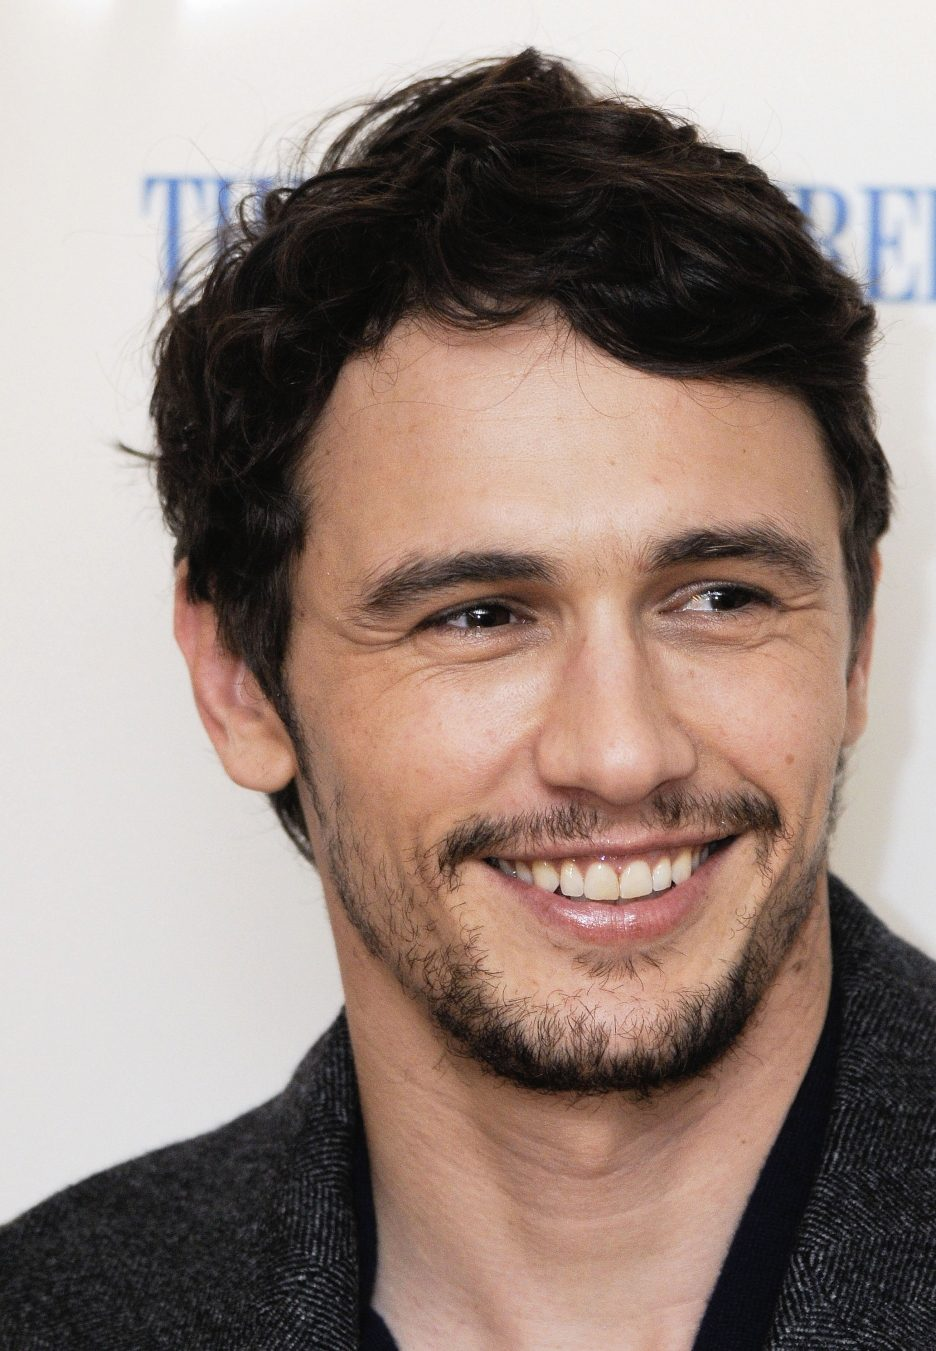 James Franco To Star In Stephen King Drama For Hulu